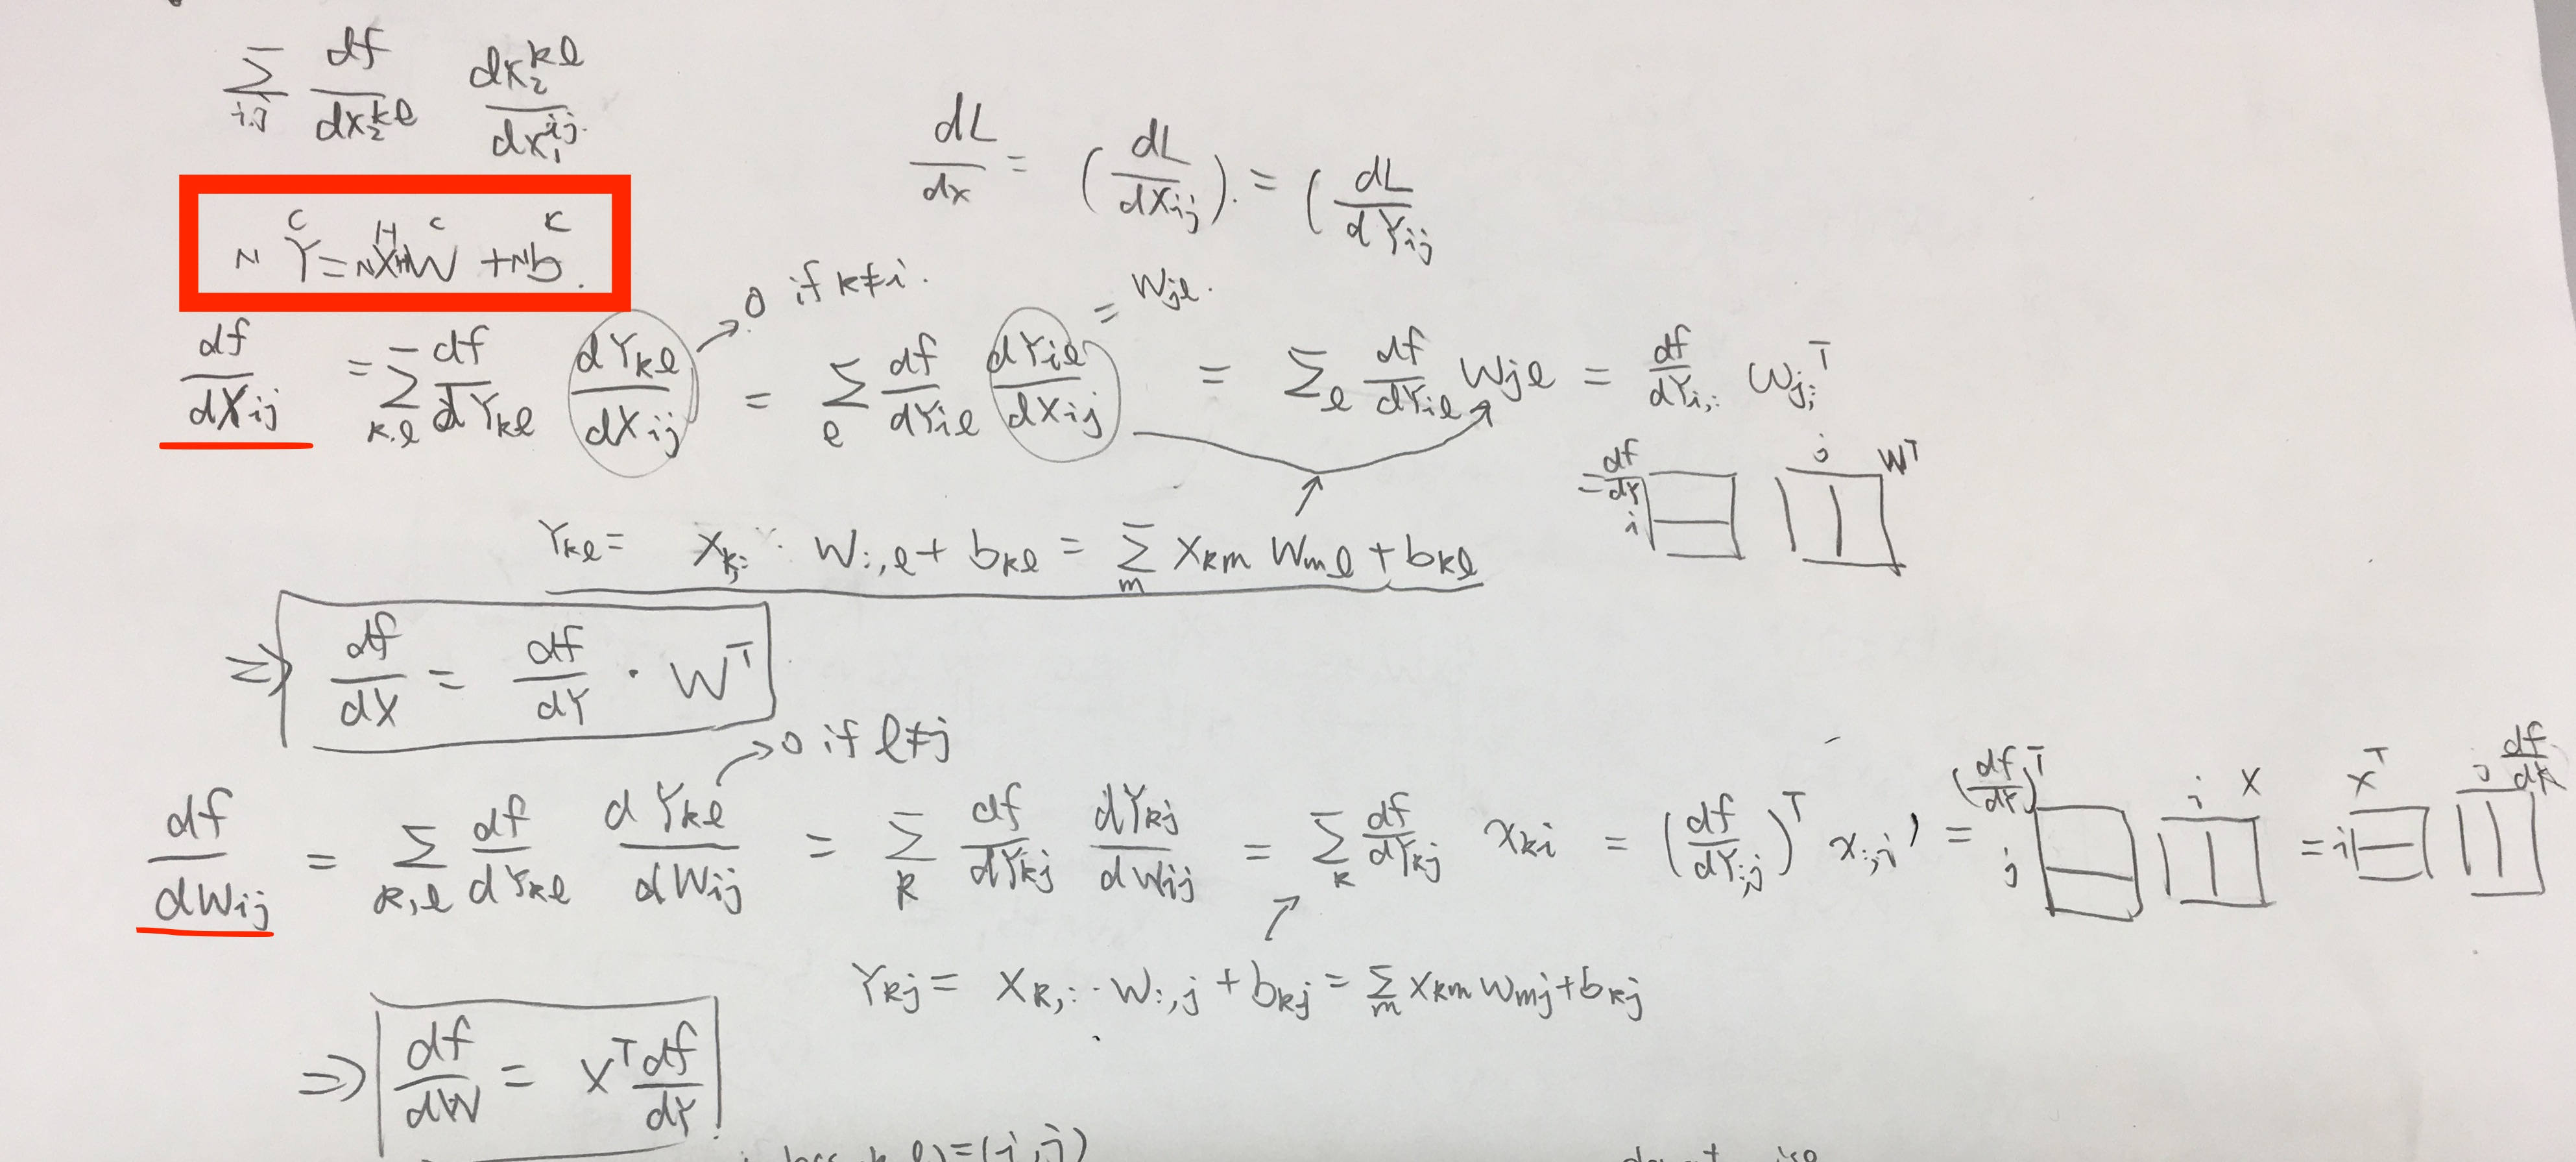 my calculation for backprop dYdX and dYdW